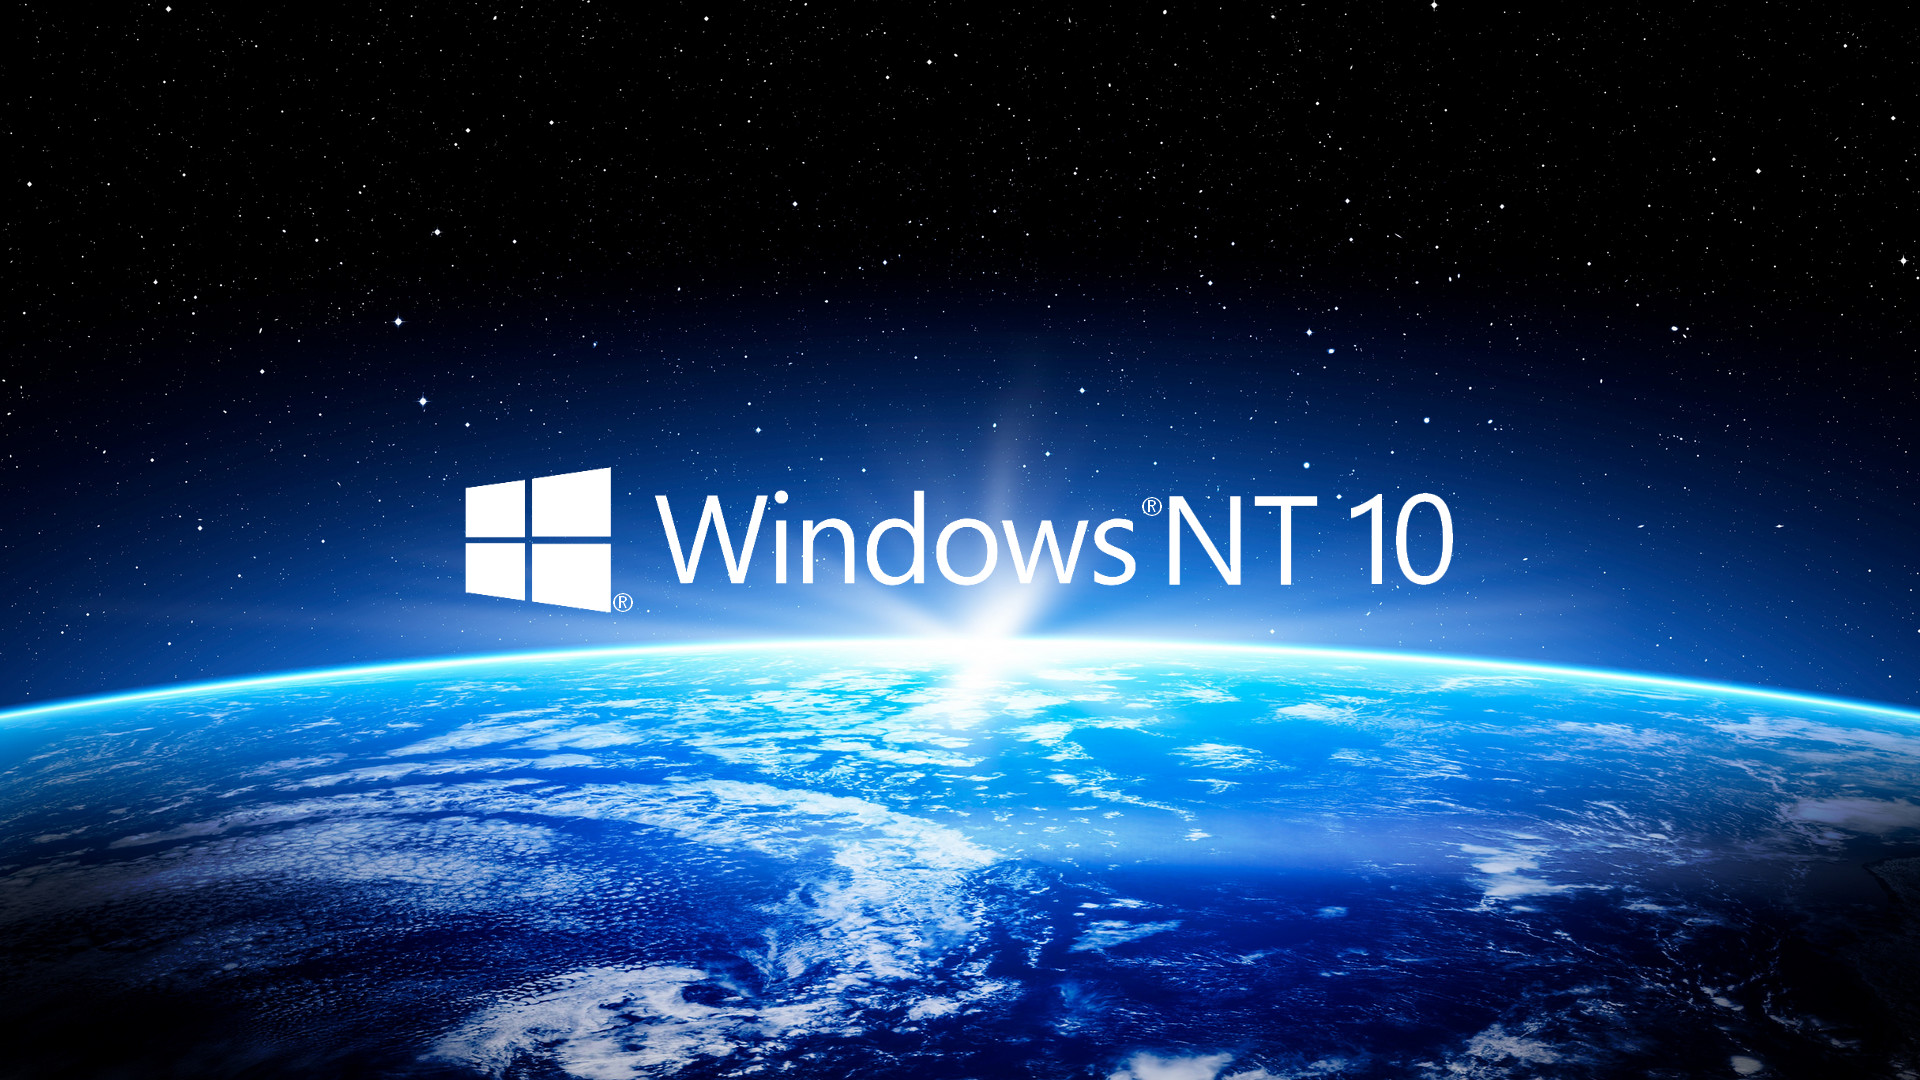 Res: 1920x1080, ... Windows NT 10 Earth View Wallpaper HD by Eric02370